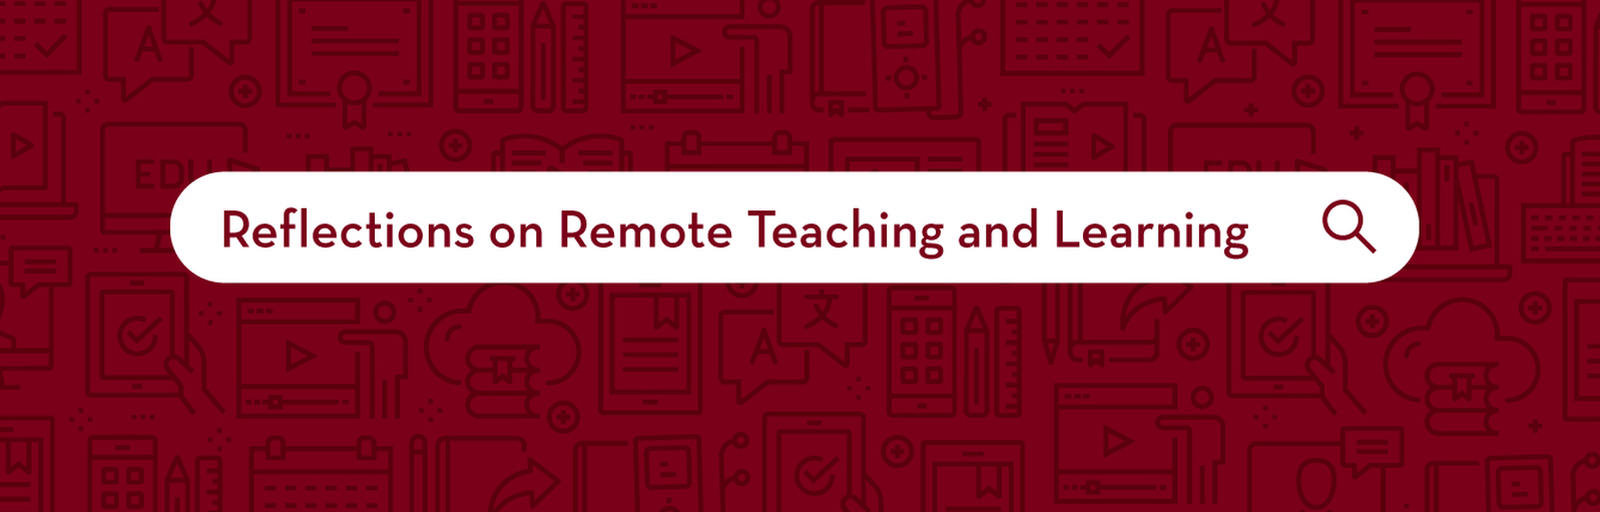 Reflections on Remote Teaching and Learning